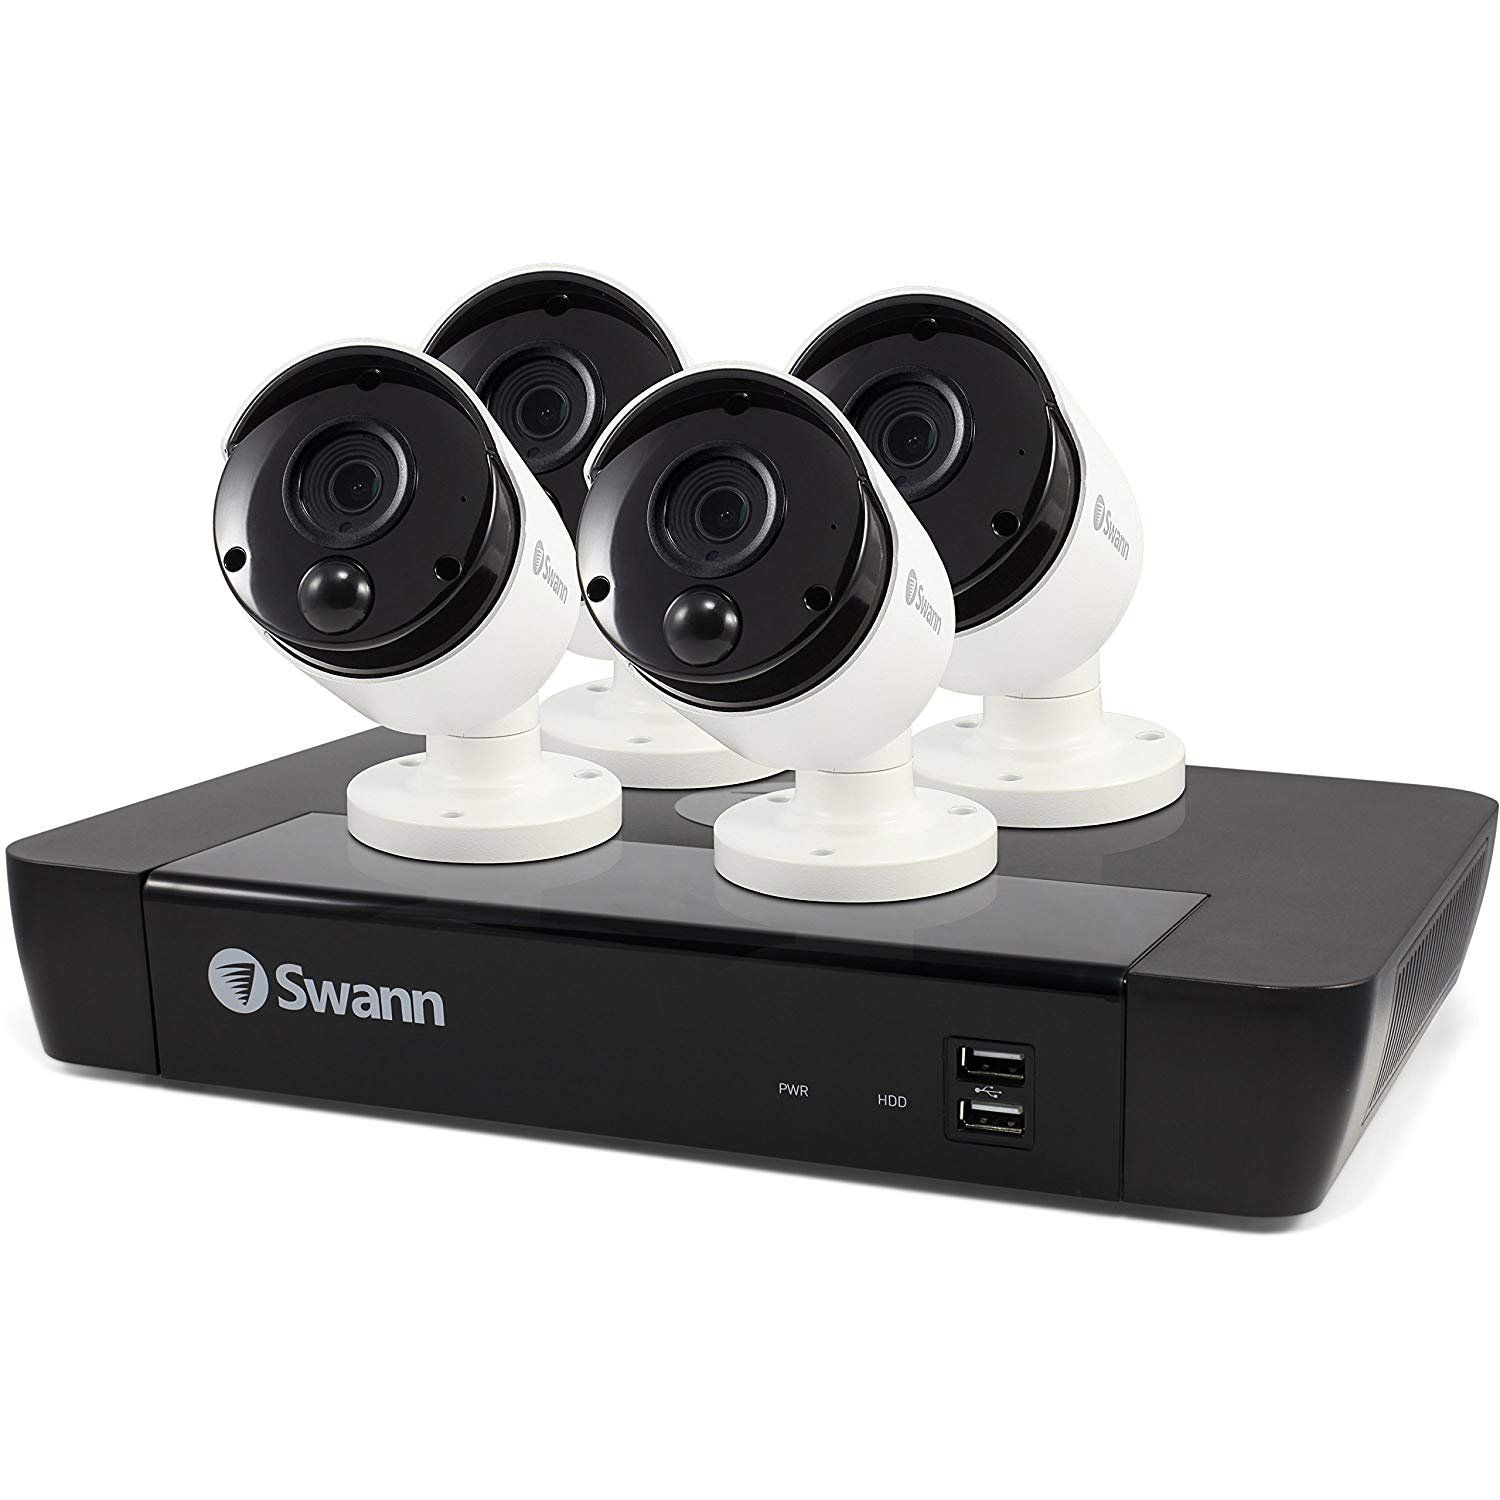 Swann 4 Camera 8 Channel 5MP Super HD NVR Security System   2TB HDD, Heat & Motion Sensing + Night Vision & 2 Way Audio by Swann